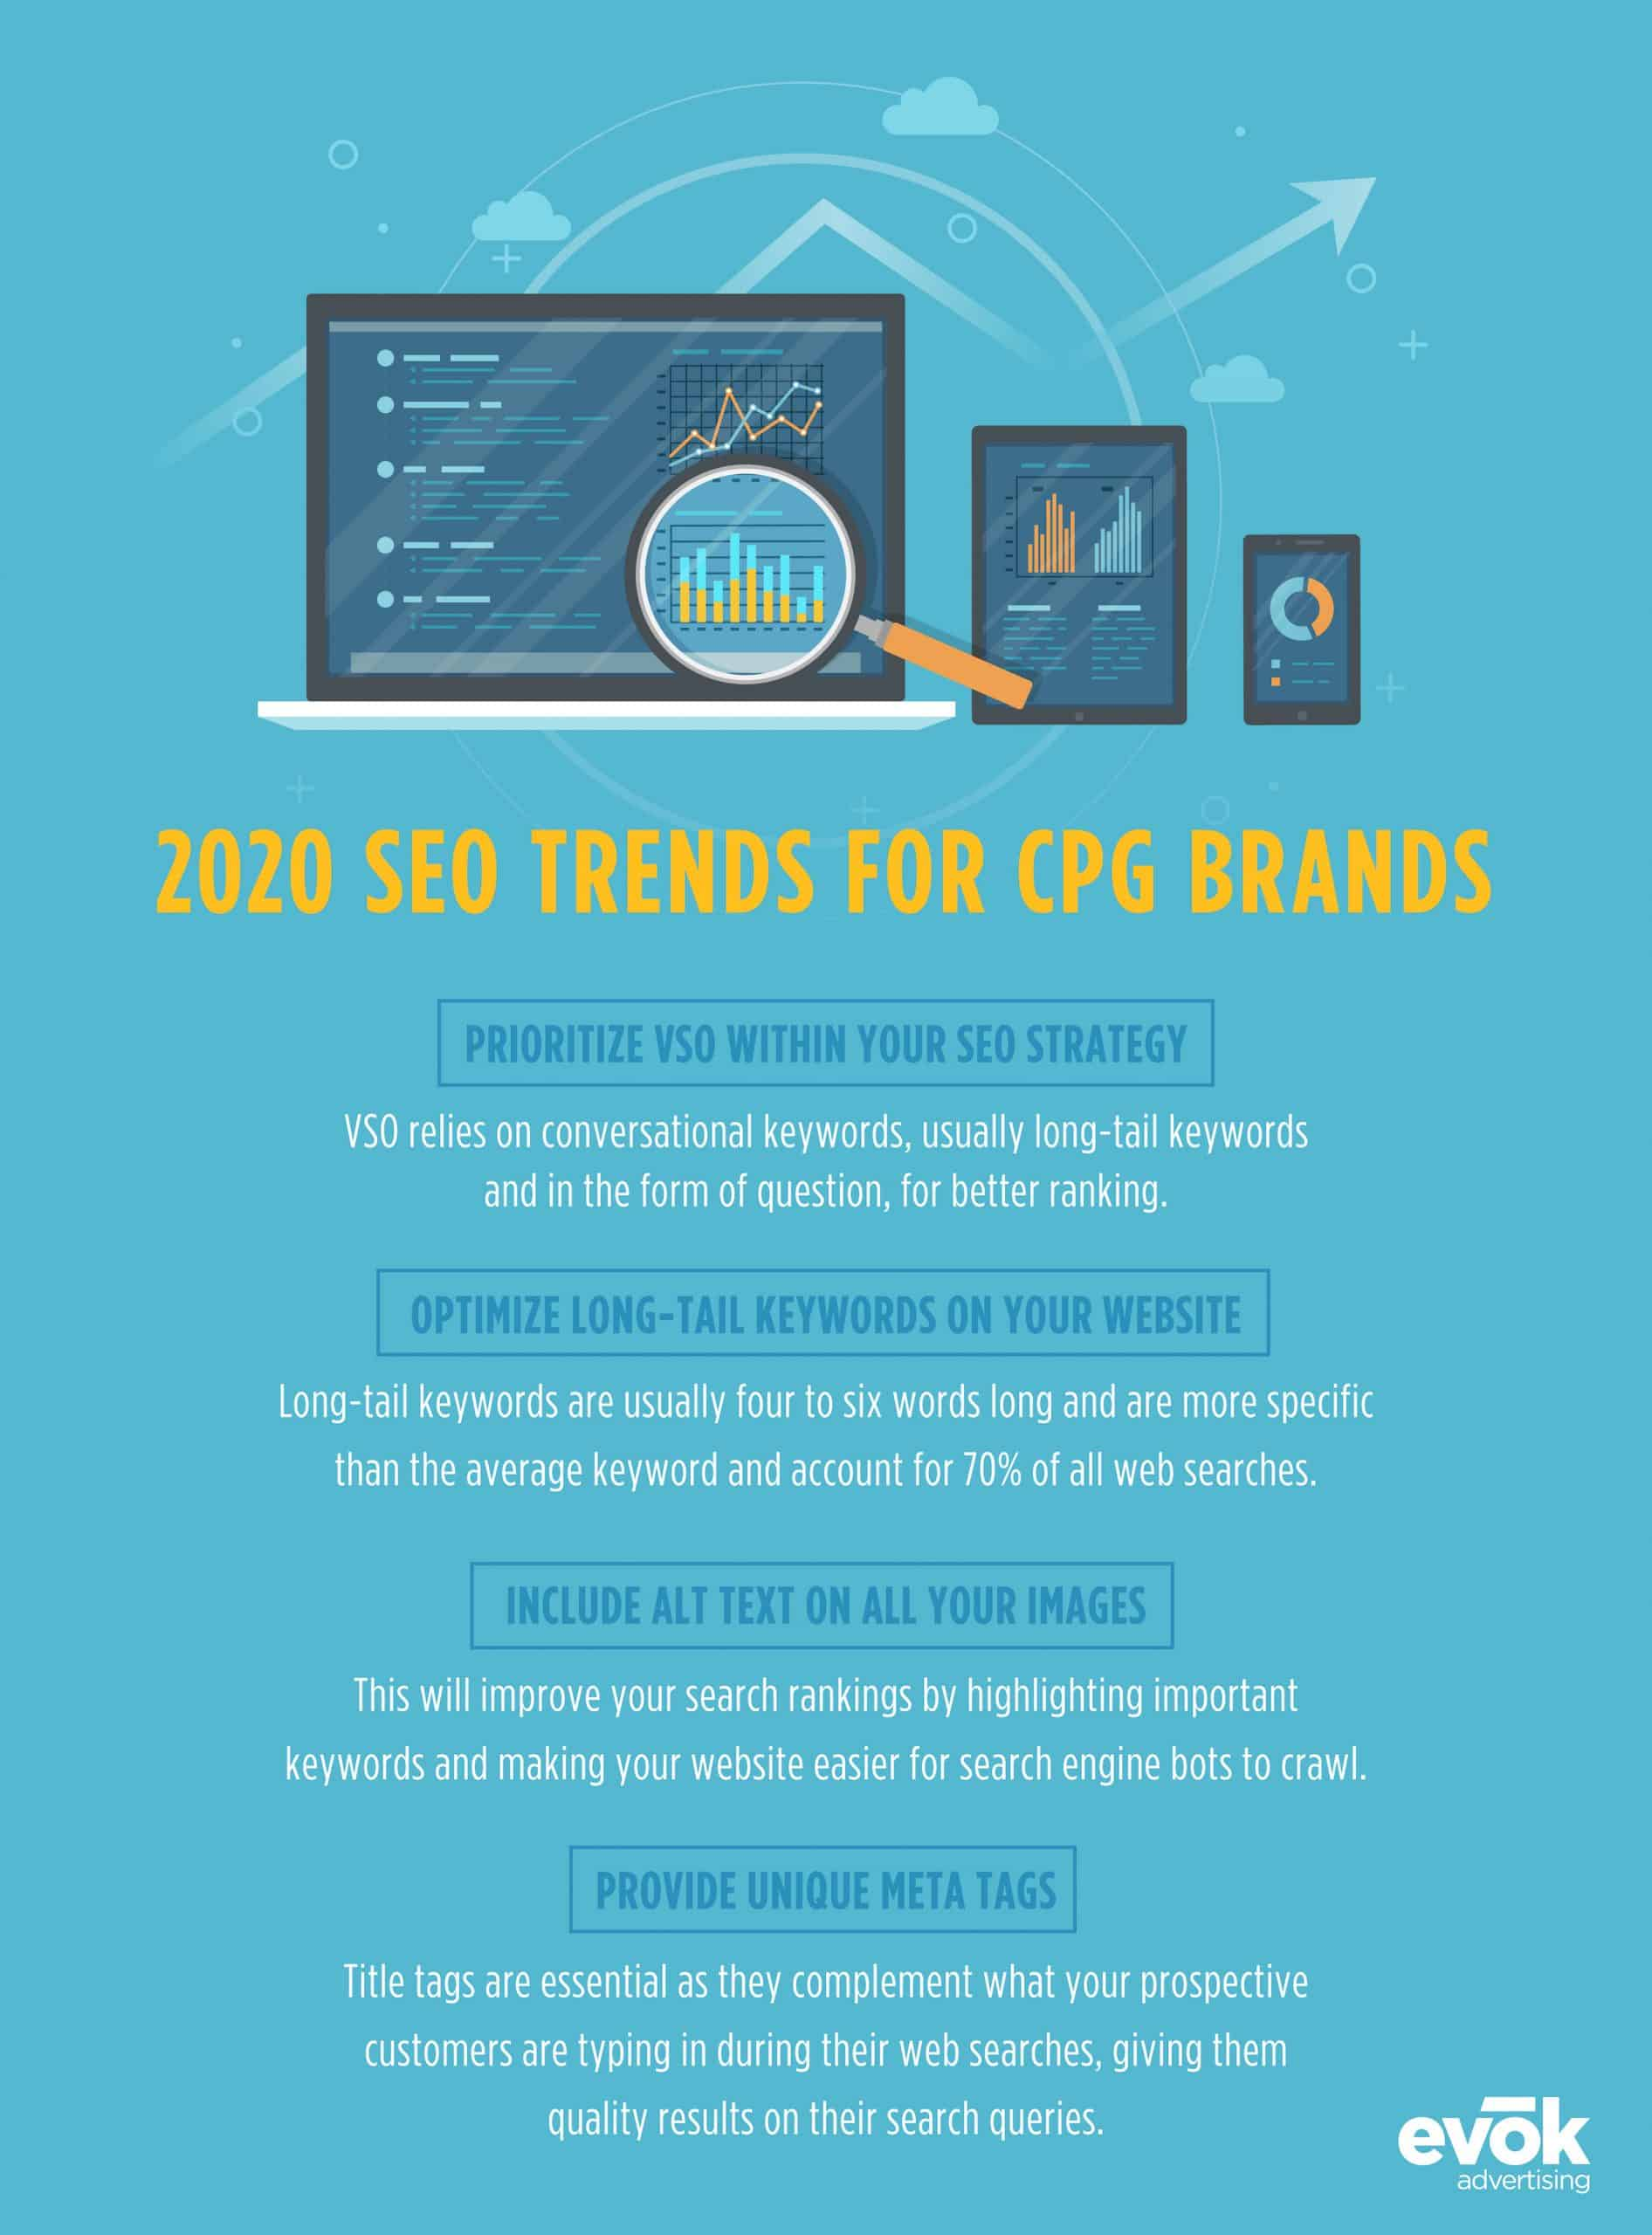 Search Engine Optimization Trends for CPG Brands in 2020: Accelerate Your Marketing Strategy